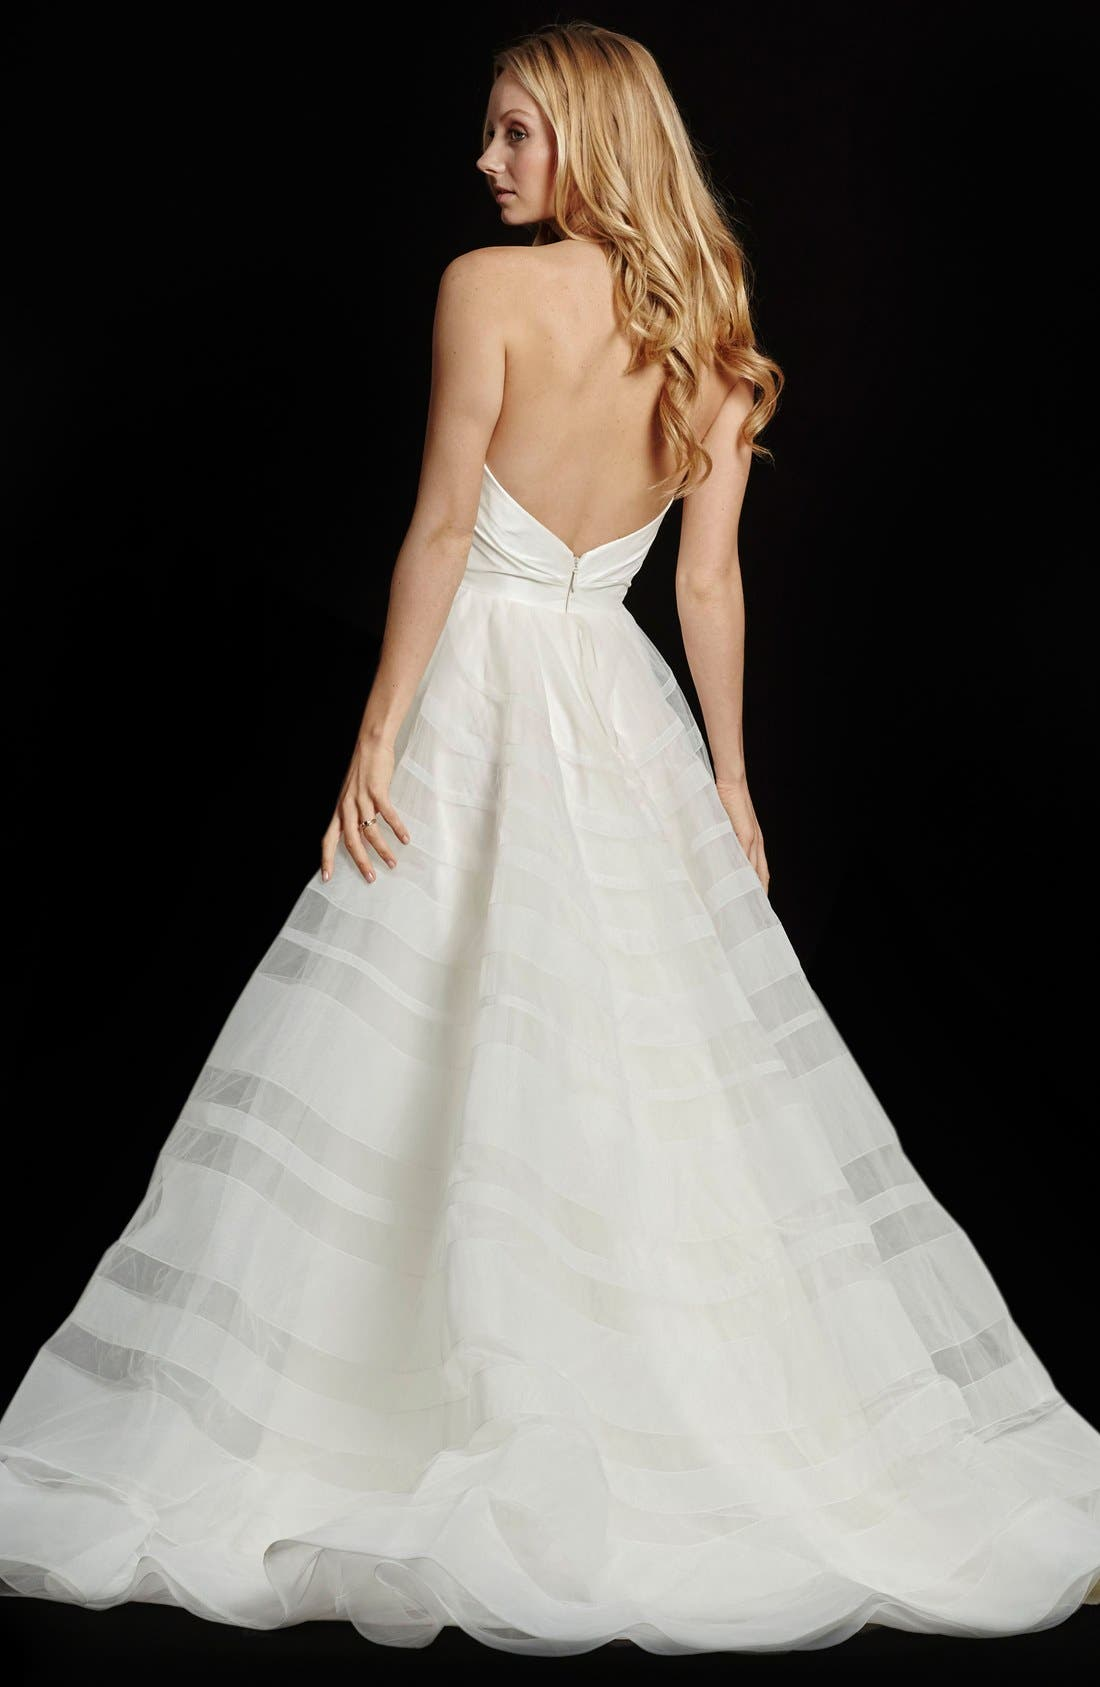 Alternate Image 2  - Hayley Paige Lily Strapless Taffeta & Tulle Stripe Skirt Ballgown